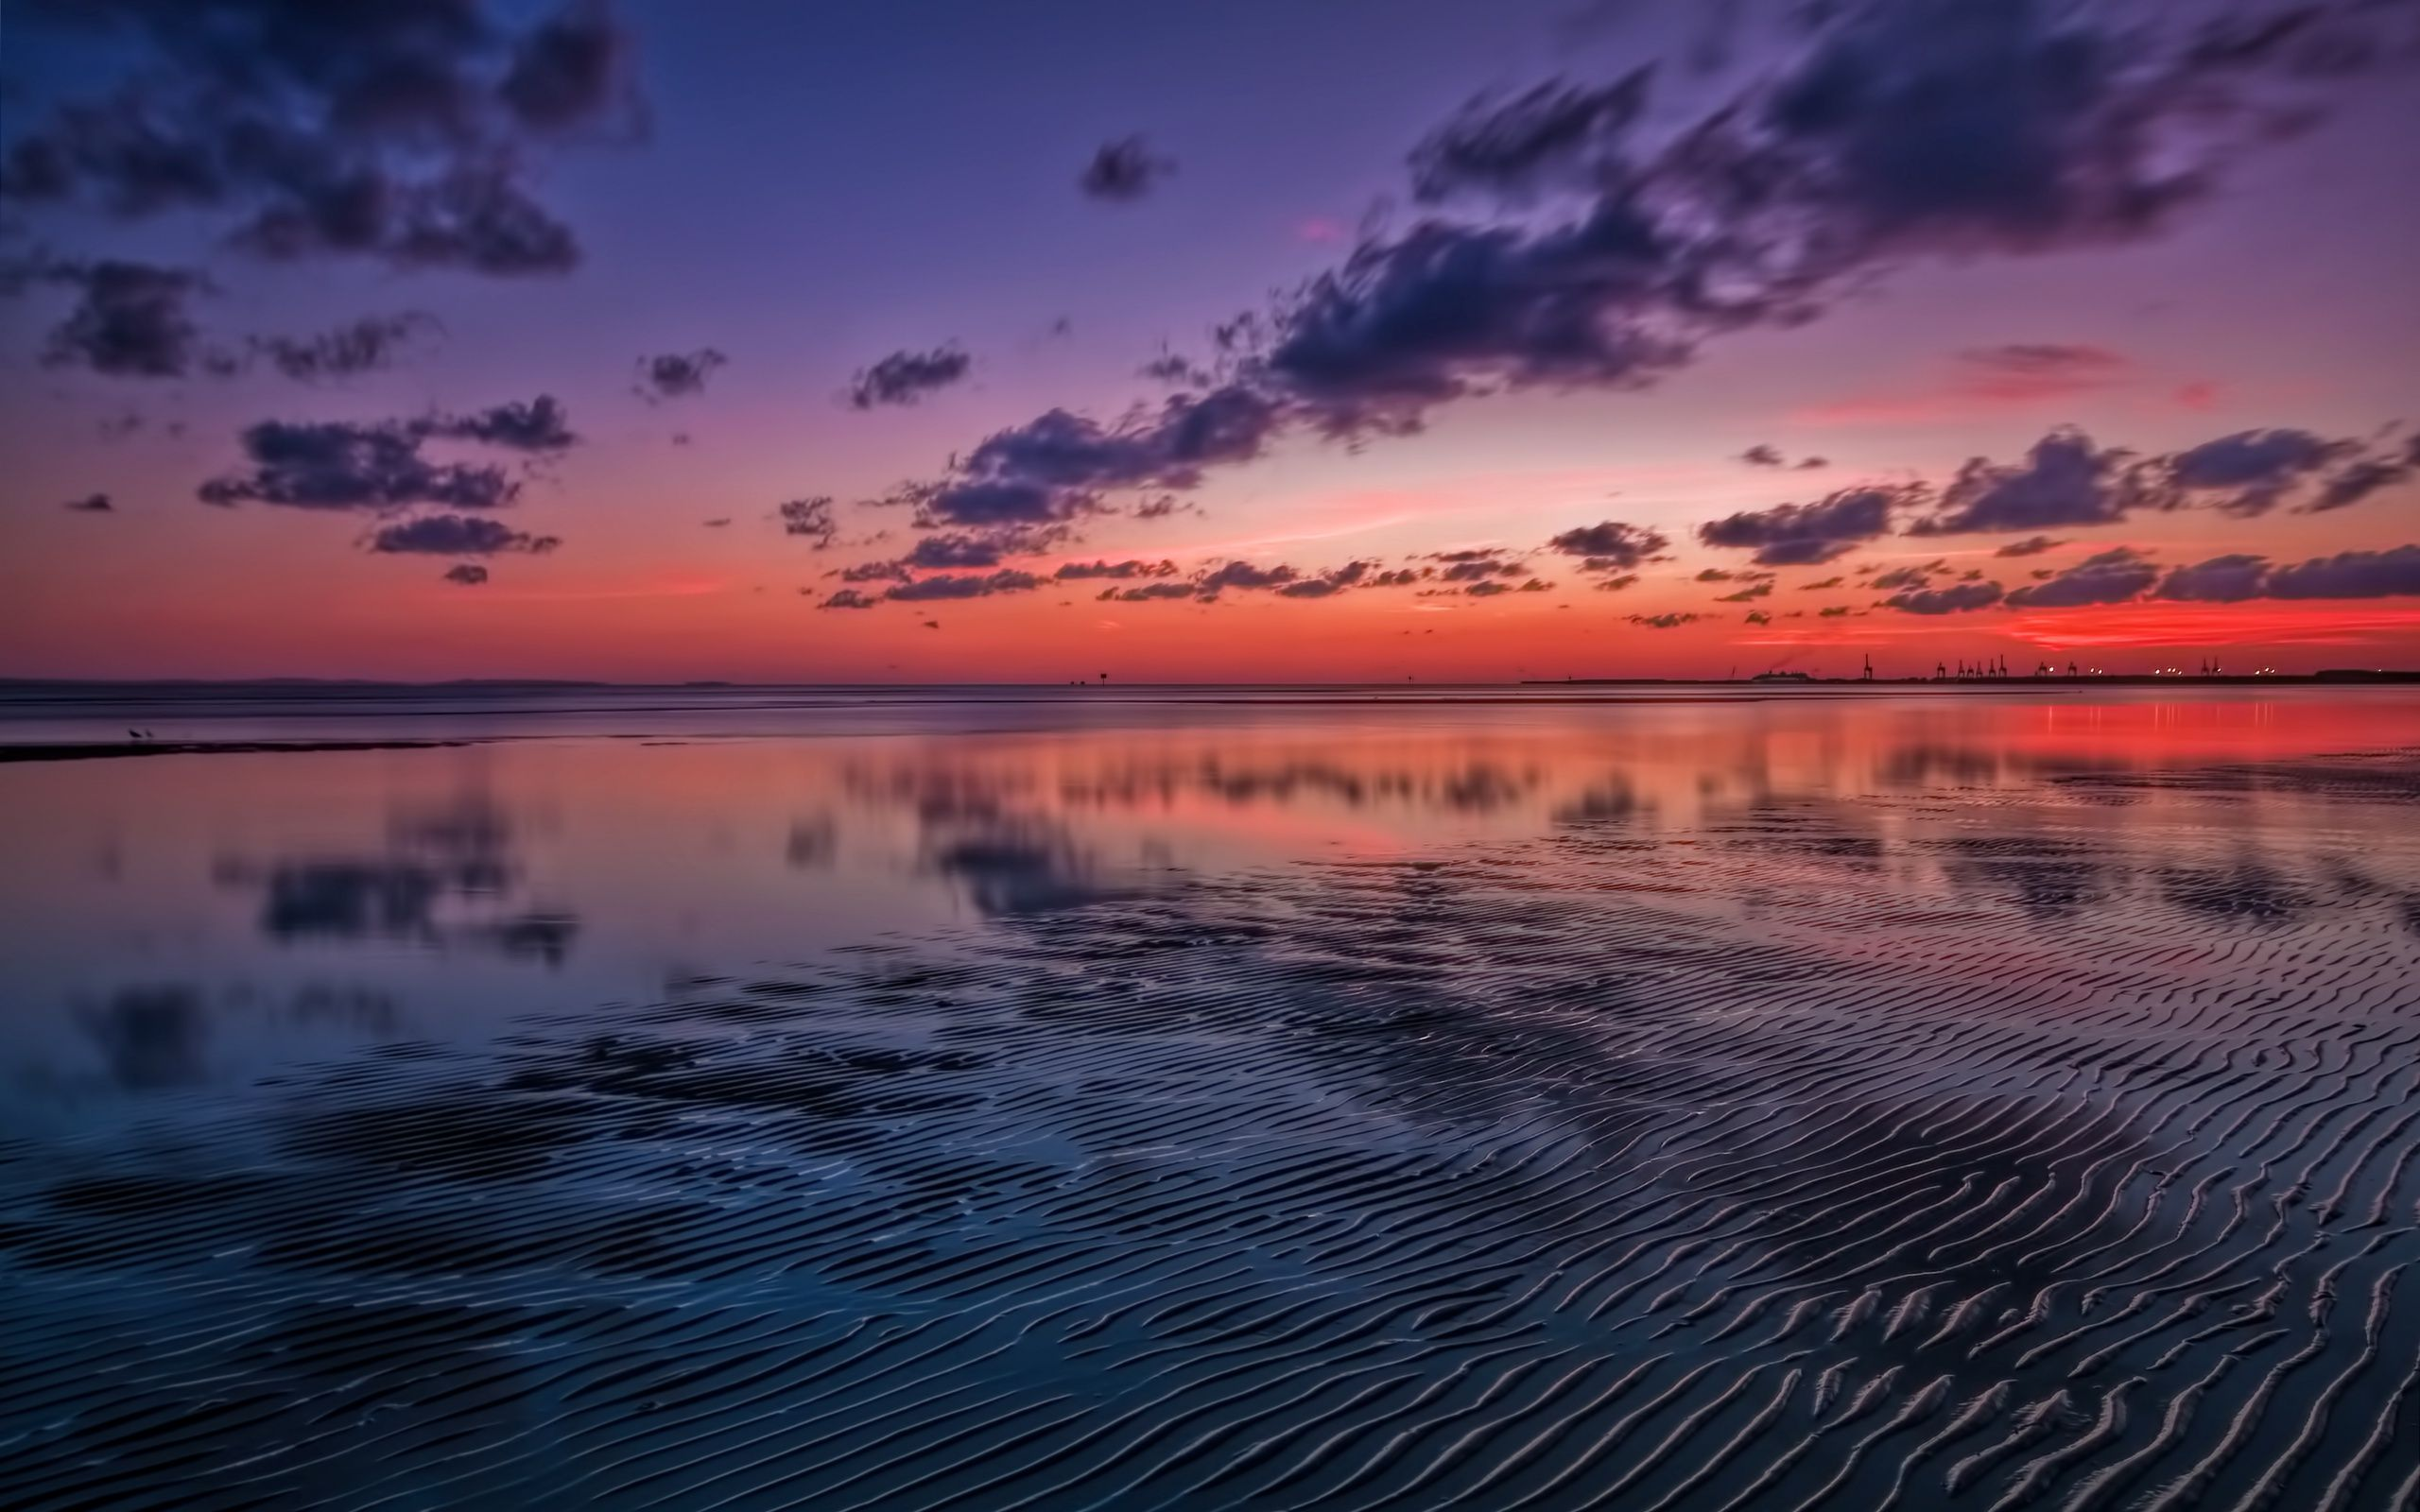 Sunset Hd Aesthetic Wallpapers Top Free Sunset Hd Aesthetic